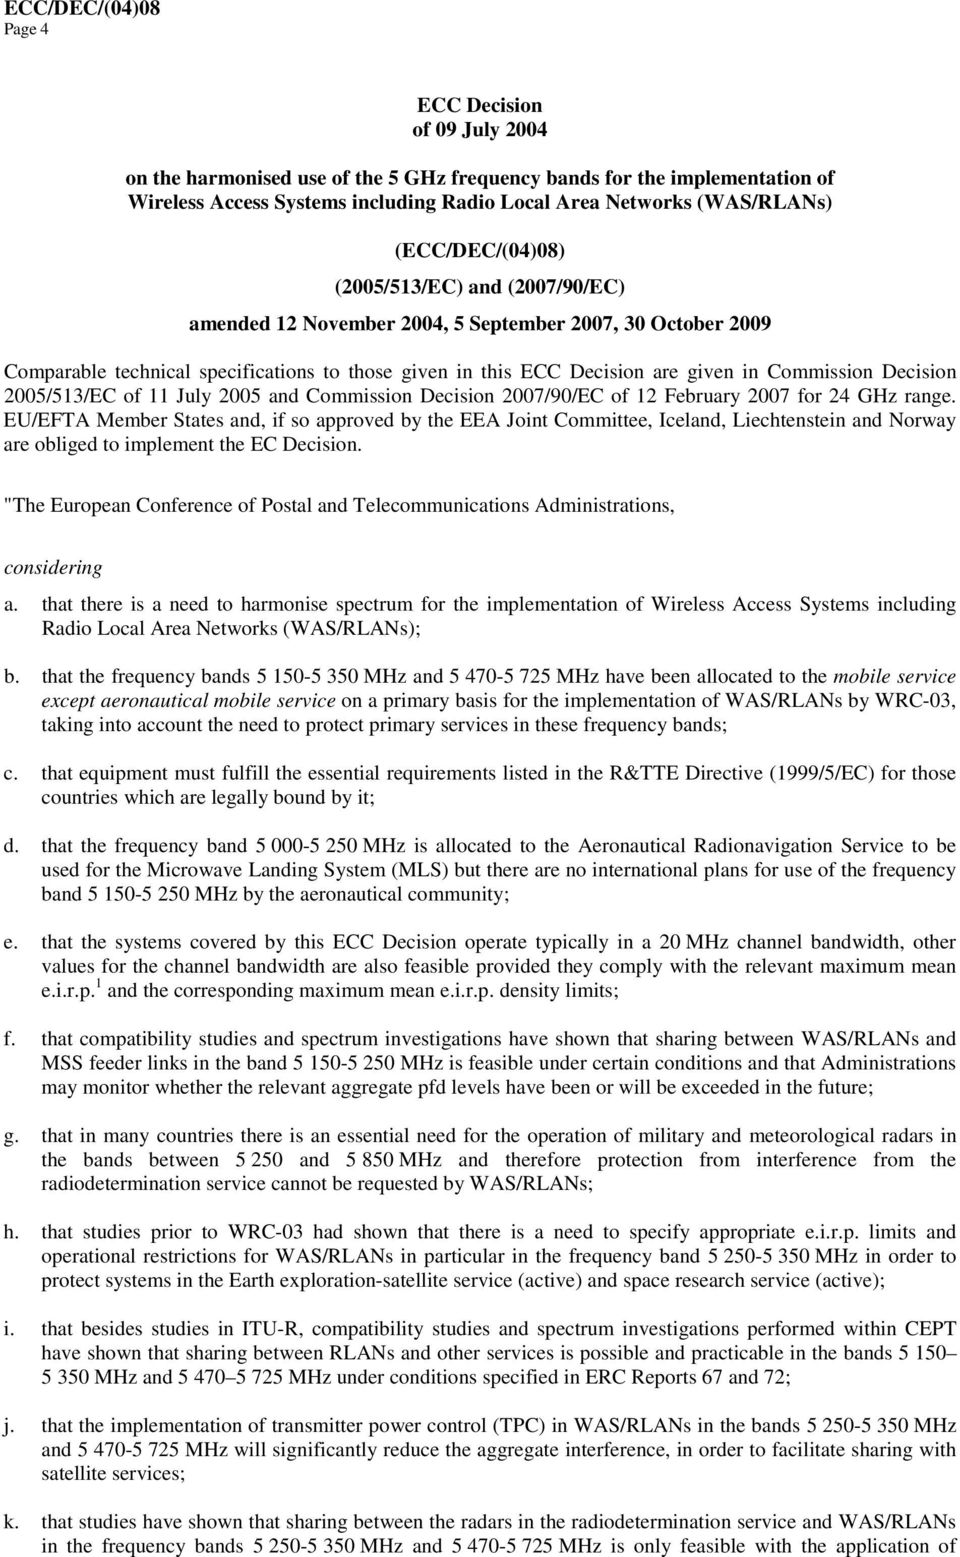 Commission Decision 2005/513/EC of 11 July 2005 and Commission Decision 2007/90/EC of 12 February 2007 for 24 GHz range.